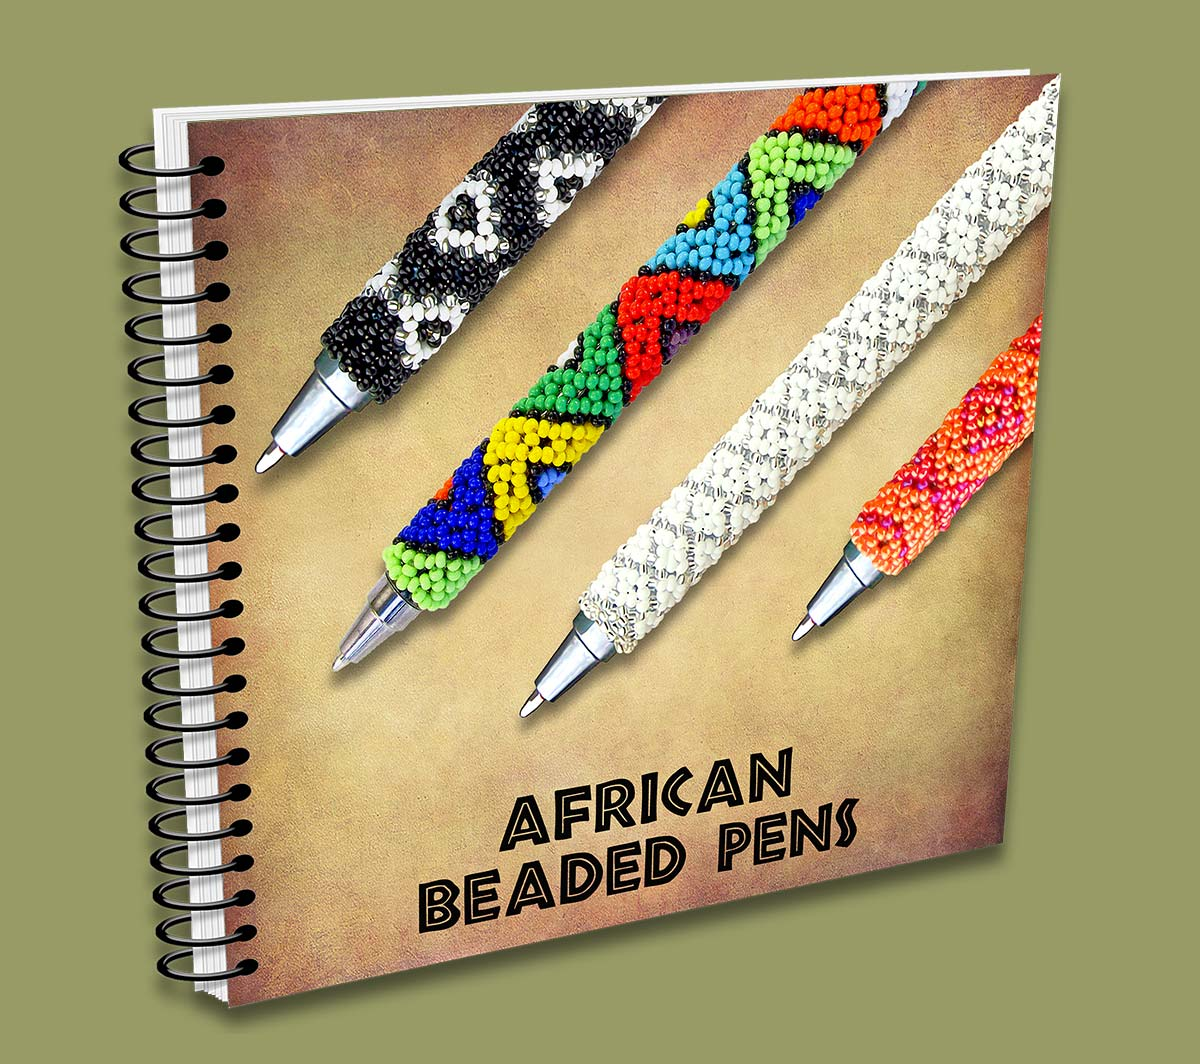 african-beaded-pens-catalogue-2